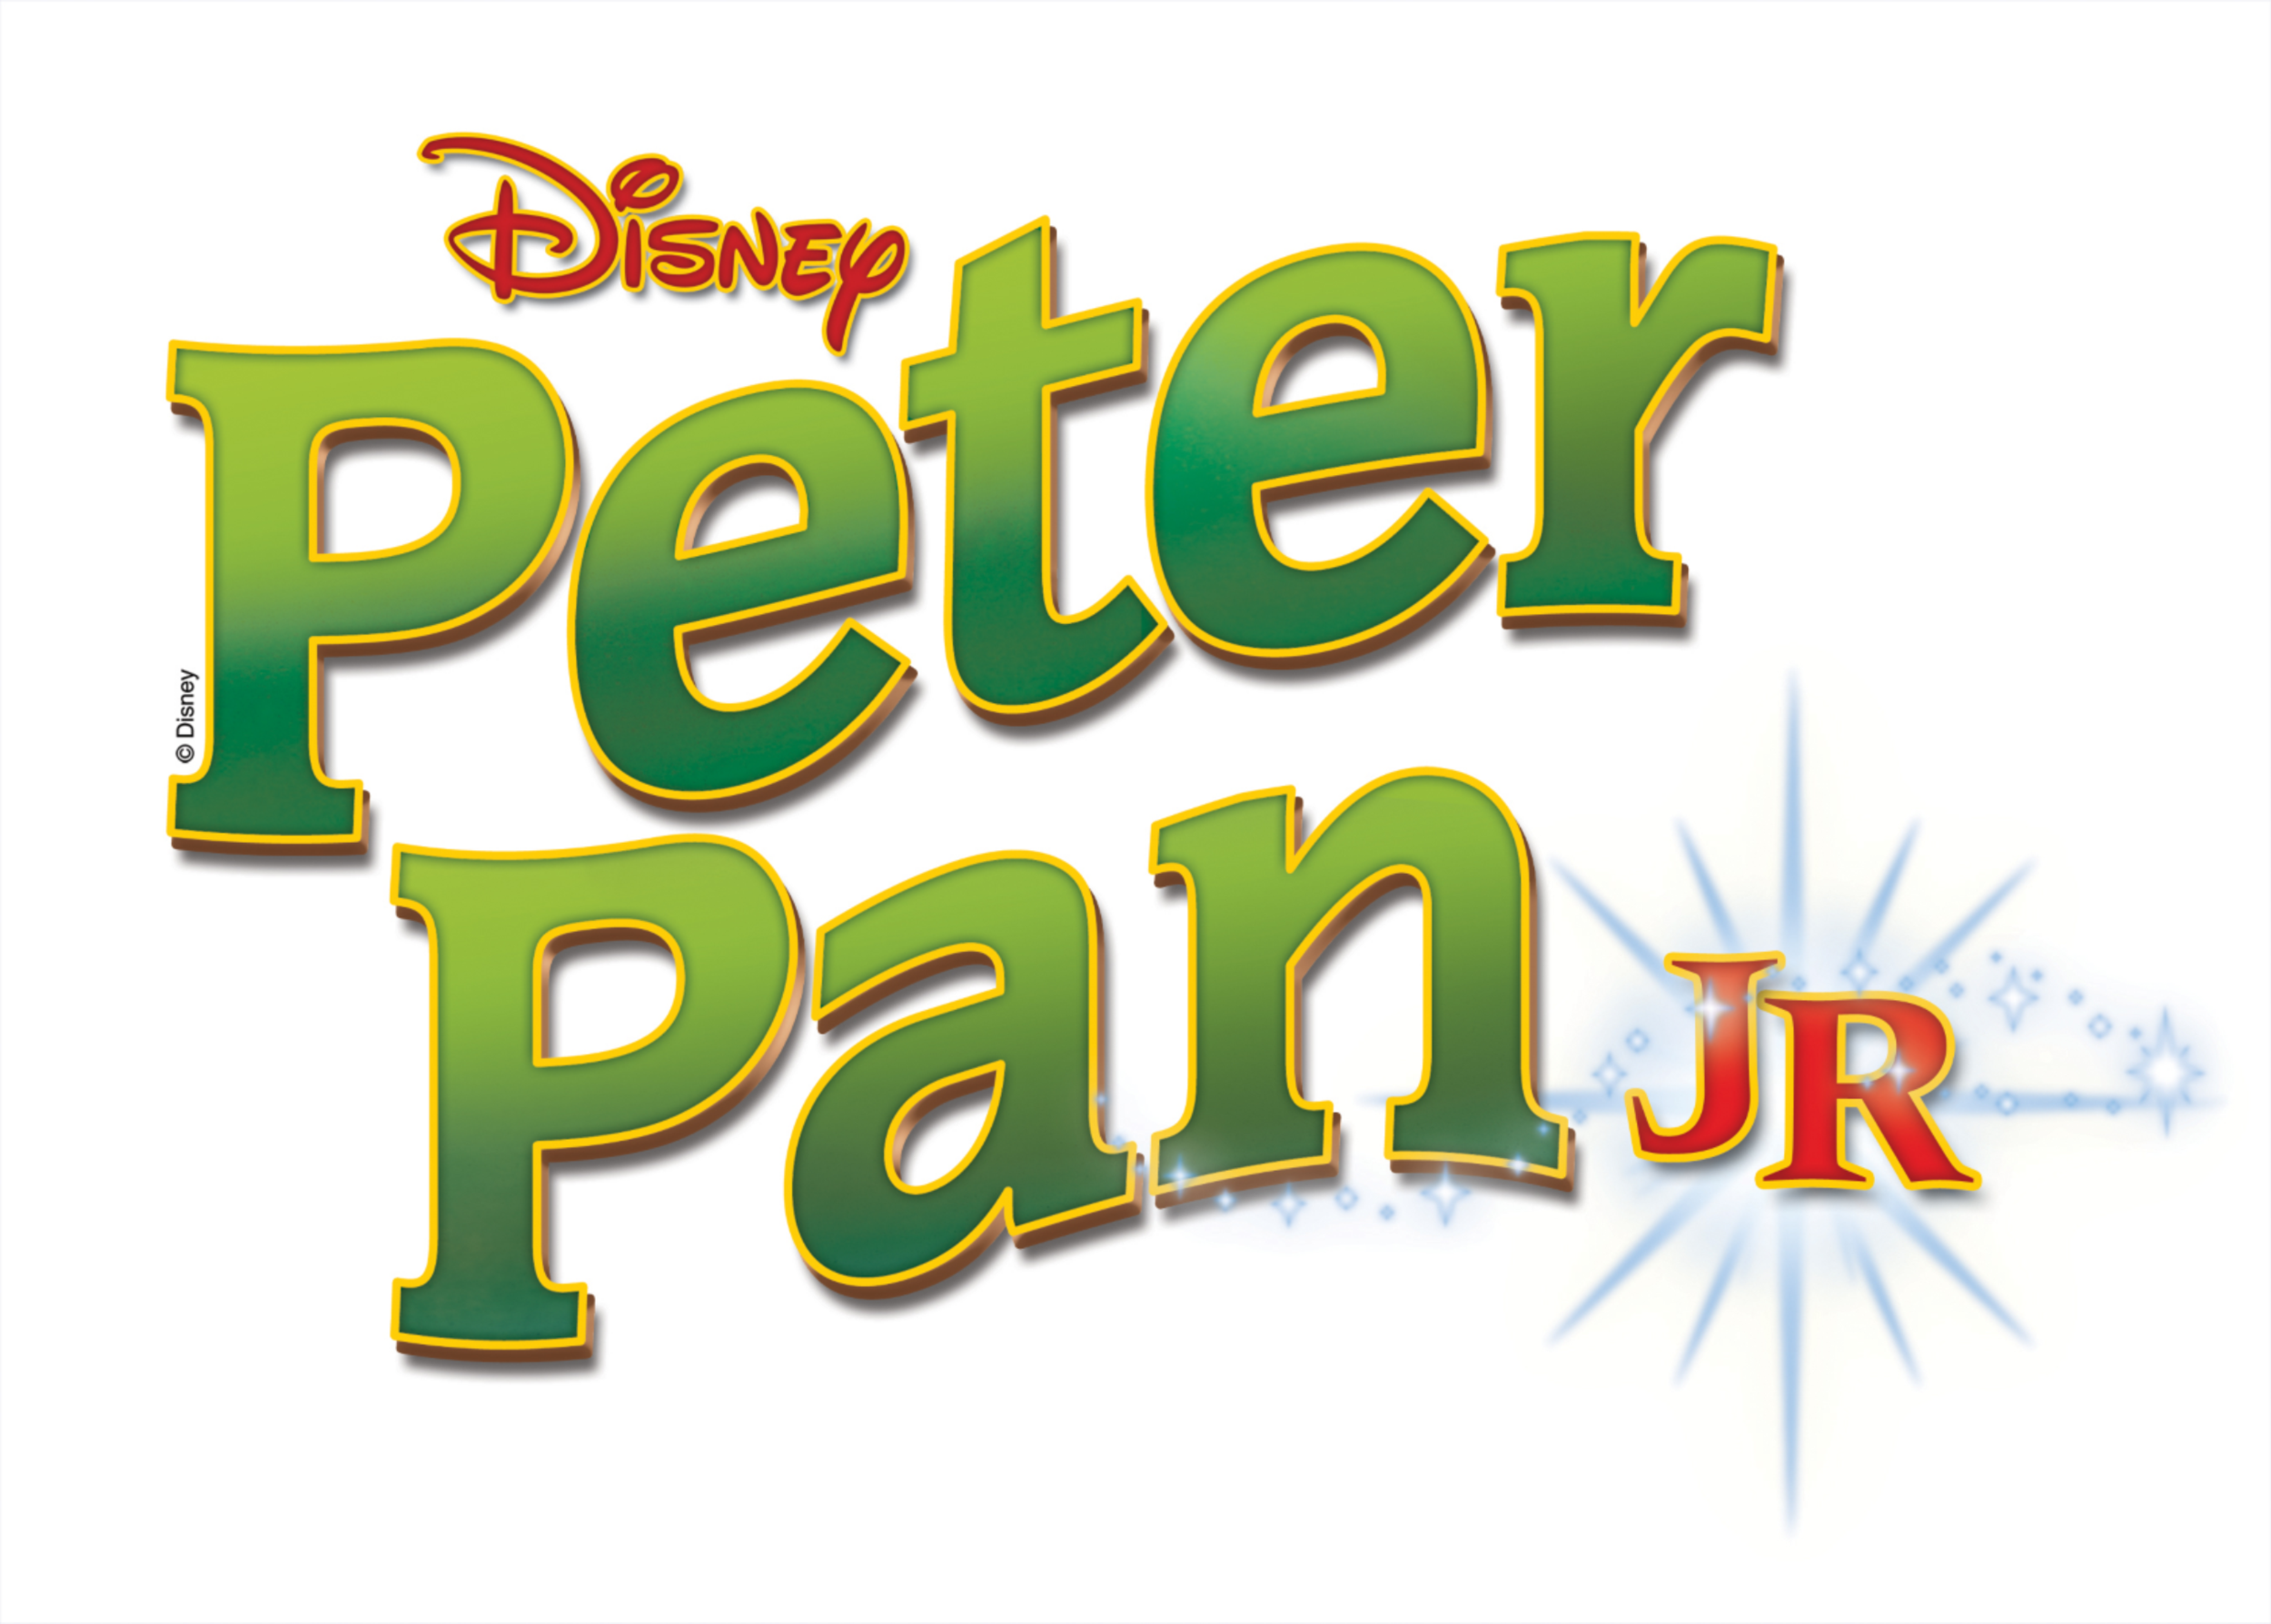 The SEED Falcon Theatre is proud to be included in a select group of pilot productions in development with Disney Theatrical Productions.  Disney's Peter Pan, Jr.  (currently in development before being released to the general public)   will be presented at THEARC Blackbox Theater in Washington, D.C. in April 2020  .  Peter and his mischievous fairy sidekick, Tinkerbell, visit the nursery of the Darling children late one night and, with a sprinkle of pixie dust, begin a magical journey across the stars that none of them will ever forget. In the adventure of a lifetime, the travelers come face to face with a ticking crocodile, a fierce Indian tribe, a band of bungling pirates and, of course, the villainous Captain Hook.